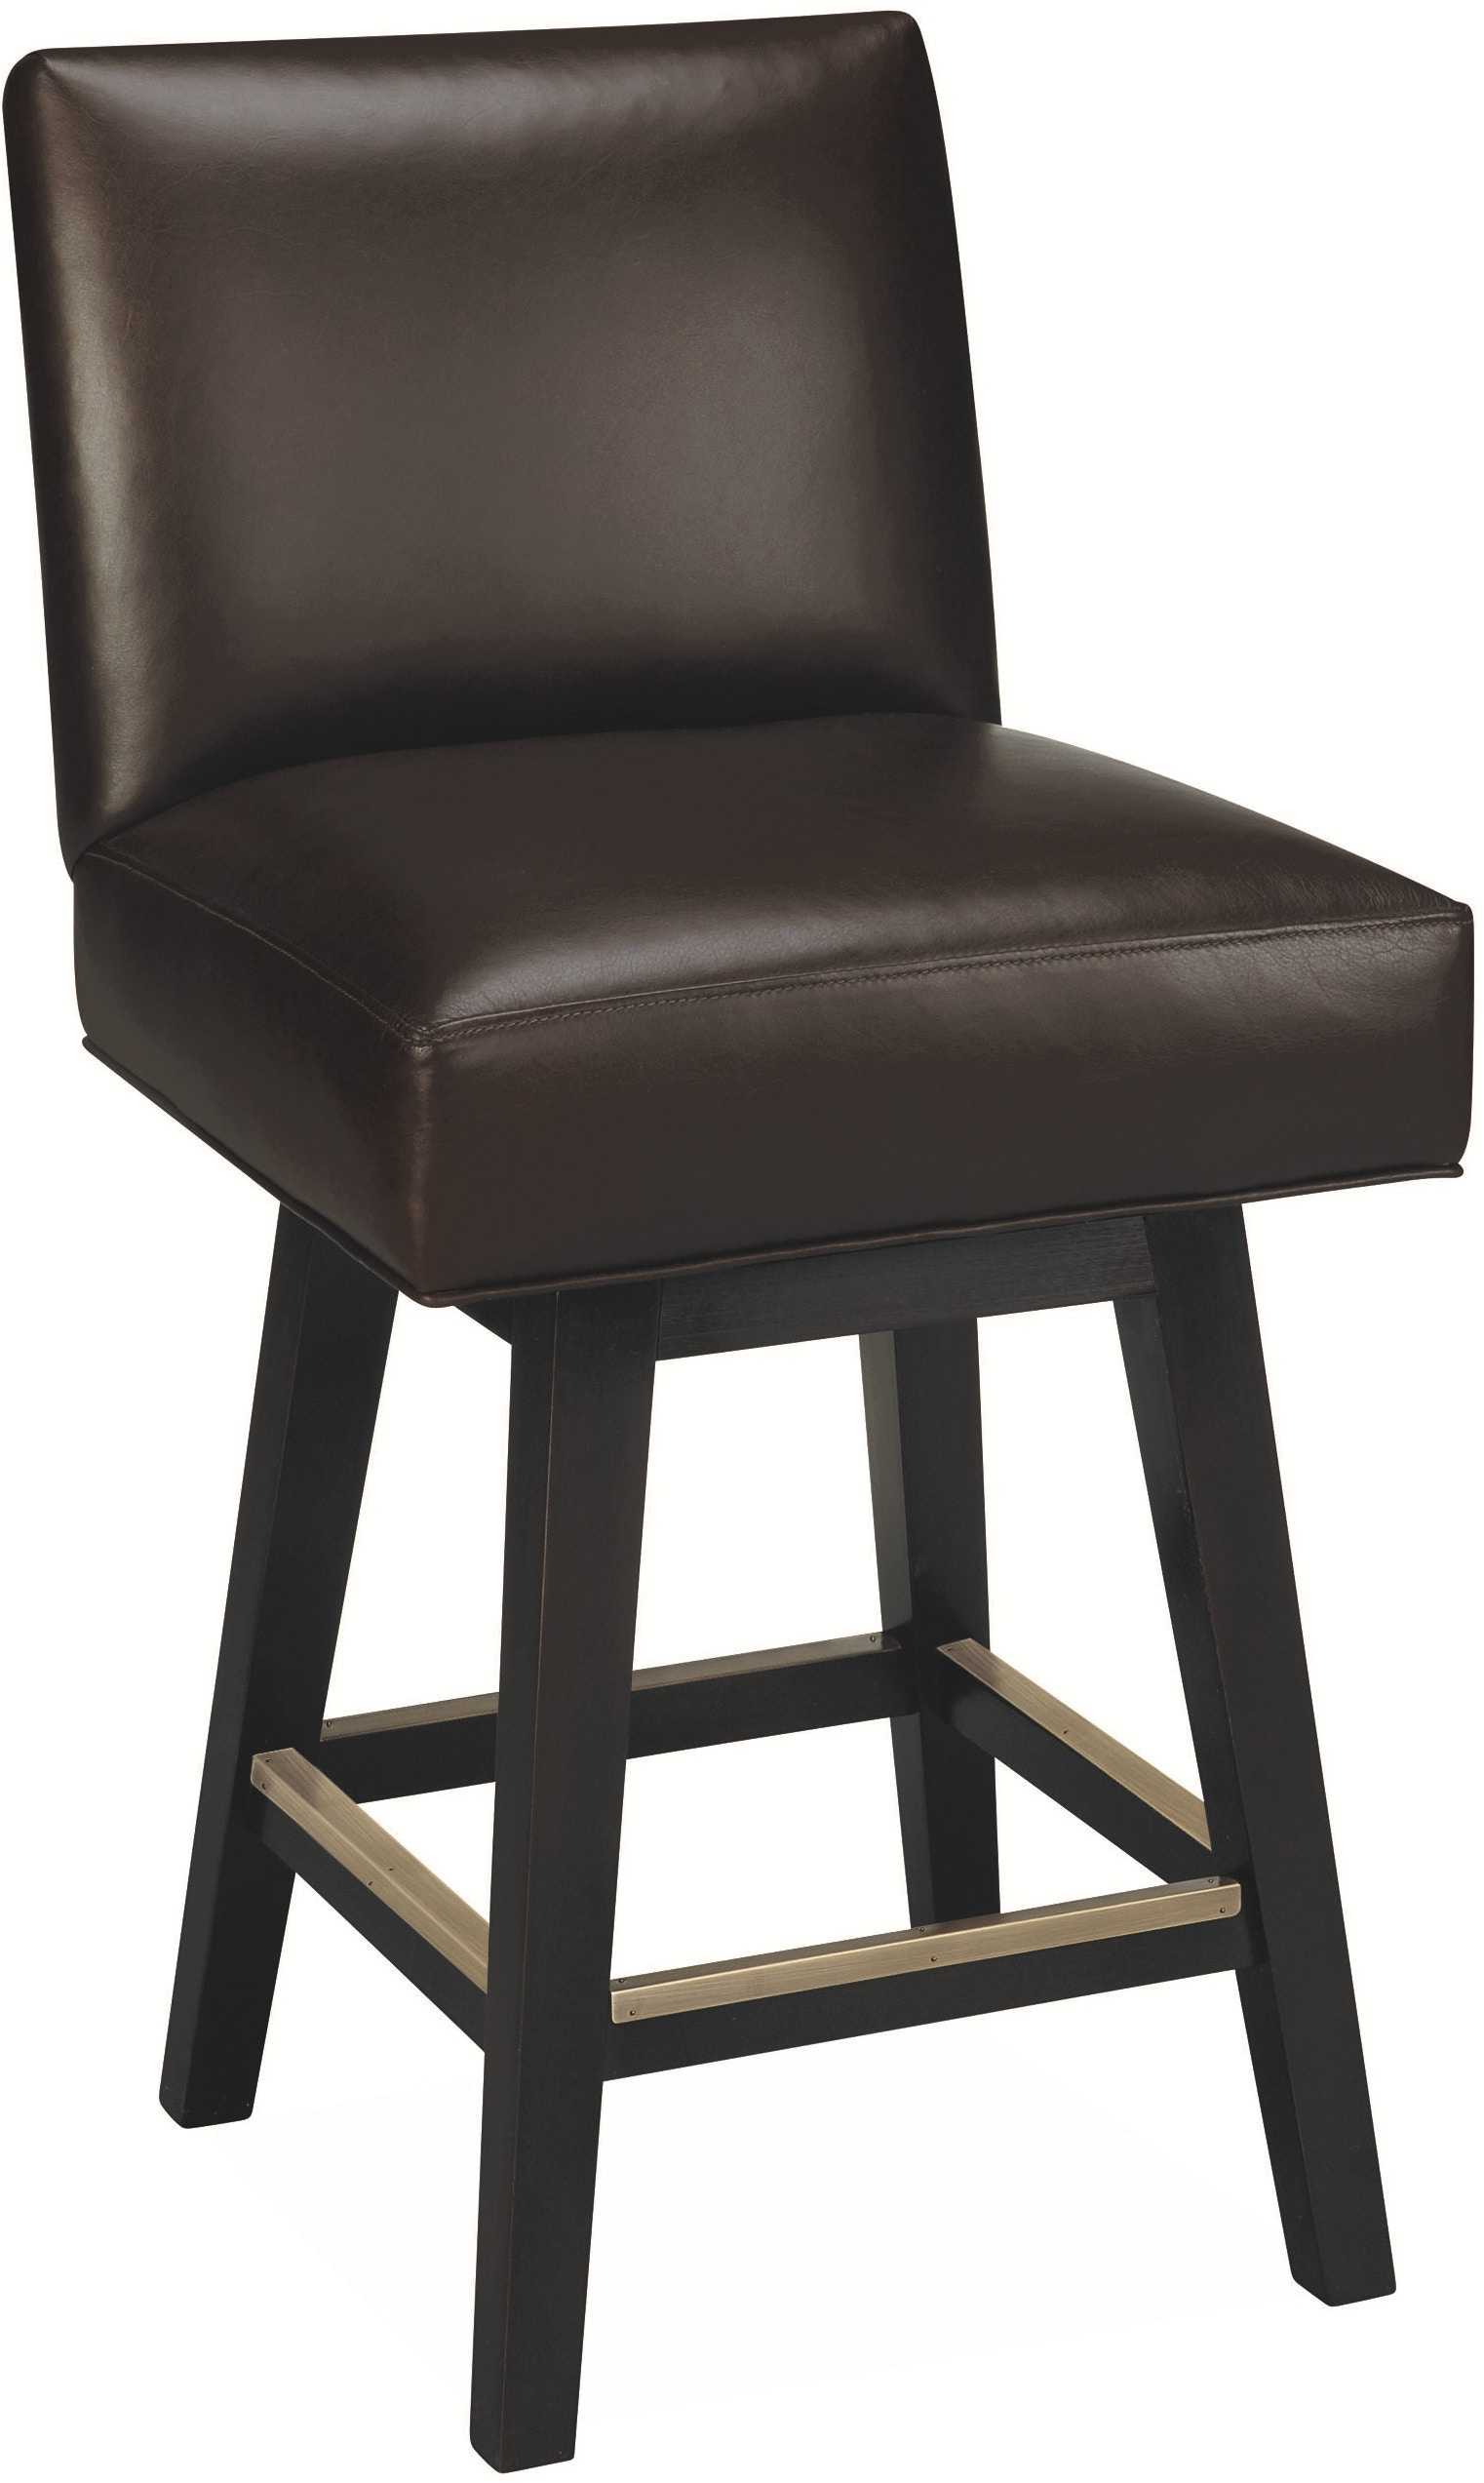 Lee Industries Bar And Game Room Leather Swivel Counter